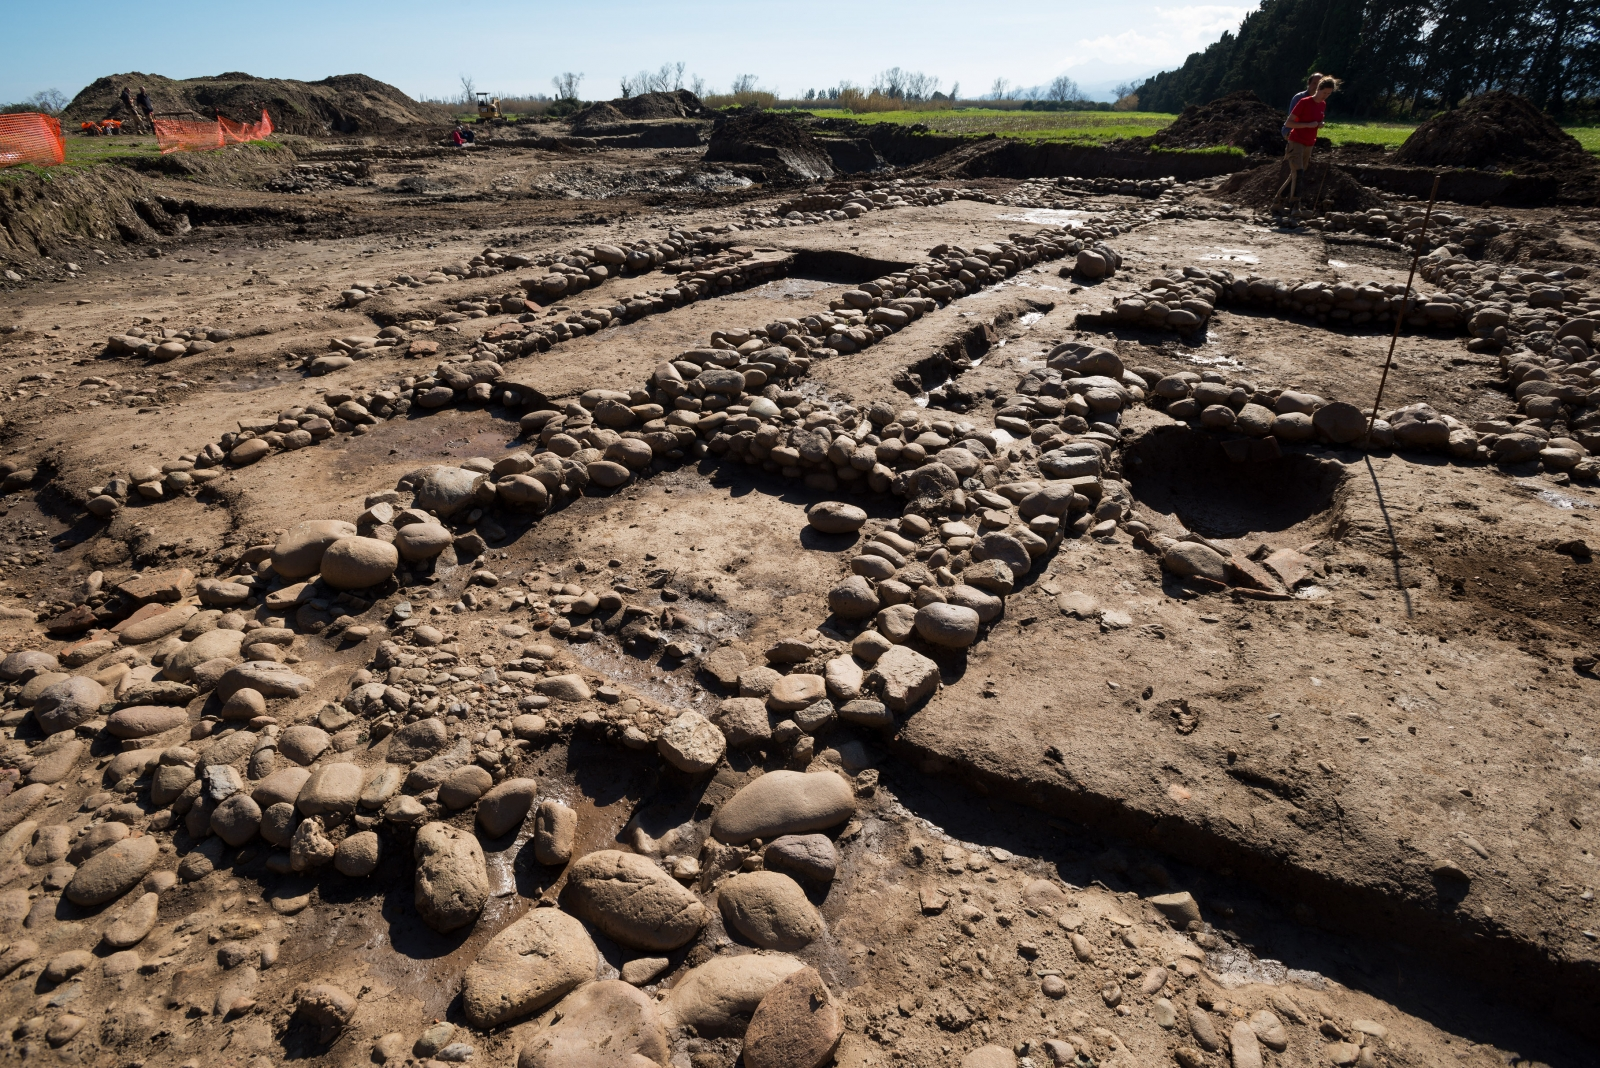 Ancient sanctuary from obscure religion that competed with Christianity unearthed in Corsica